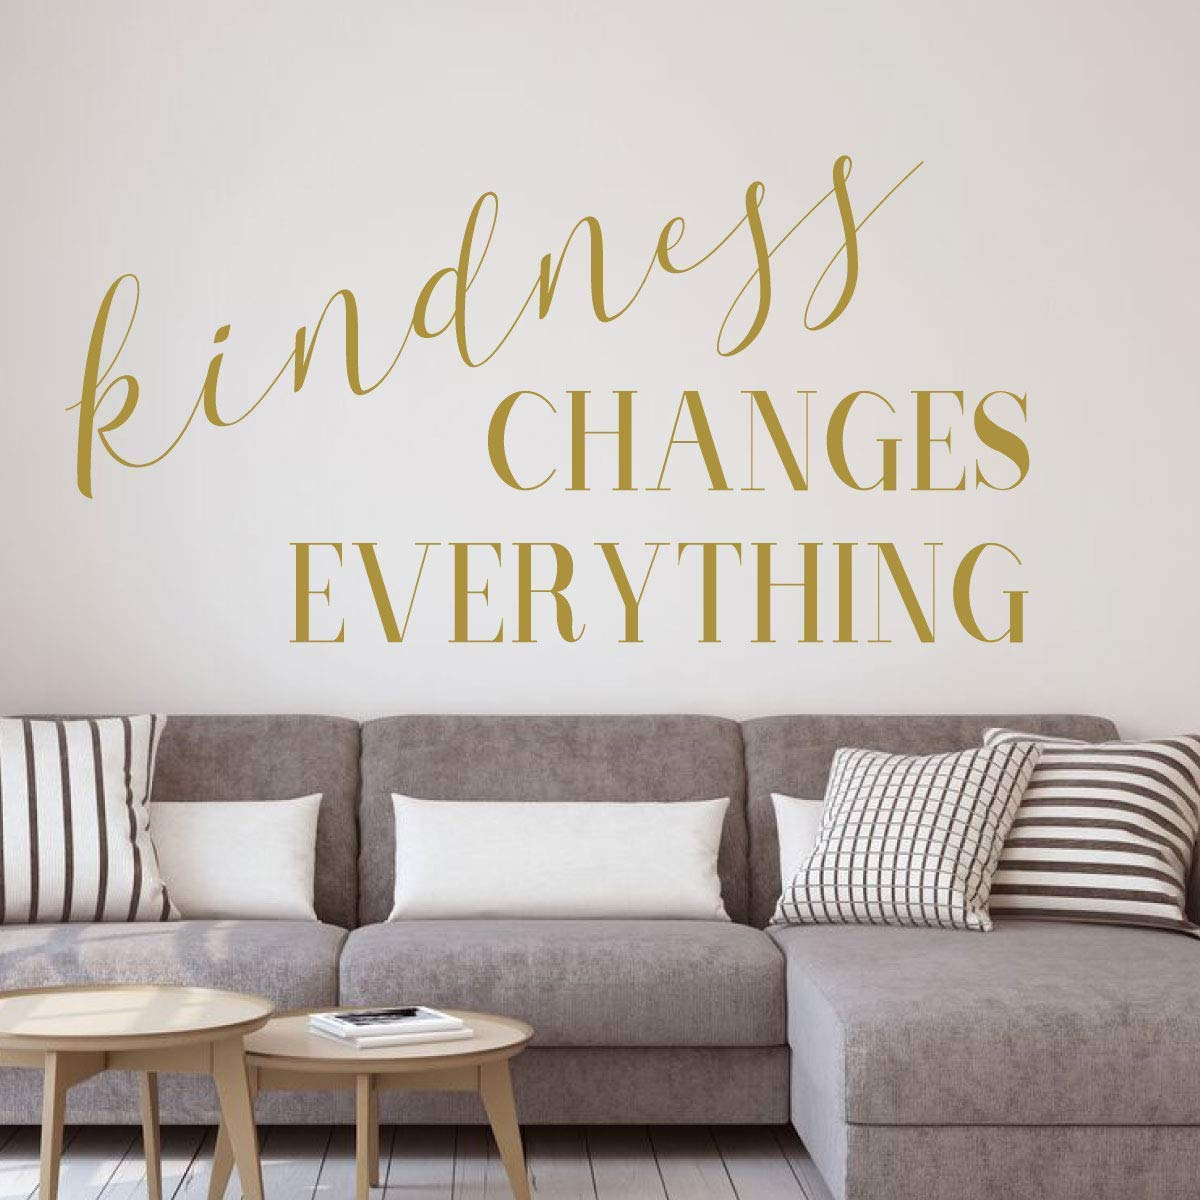 Kindness Changes Everything Living Room Wall Decal Vinyl Decor Wall Decal